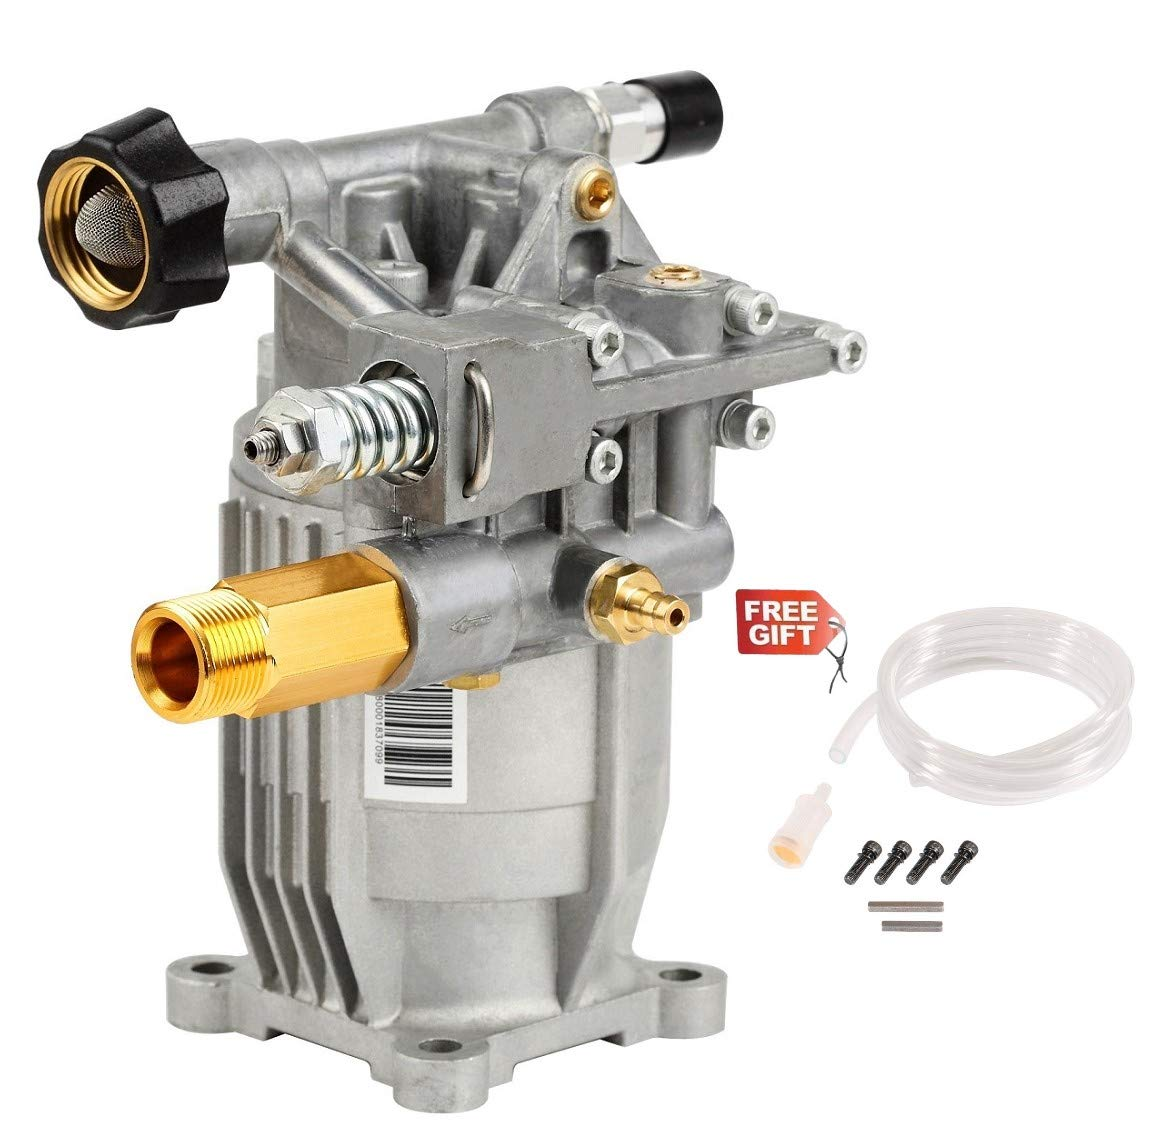 YAMATIC Horizontal Pressure Washer Pump 2900 PSI 2.3 GPM 6.5HP 3/4'' Shaft Replacement fit for Himore 309515003 308418007 Honda GC160 Karcher K2400HH G2400HH Troy-Bilt 020242 UT80522 Generac Powerstrok by YAMATIC